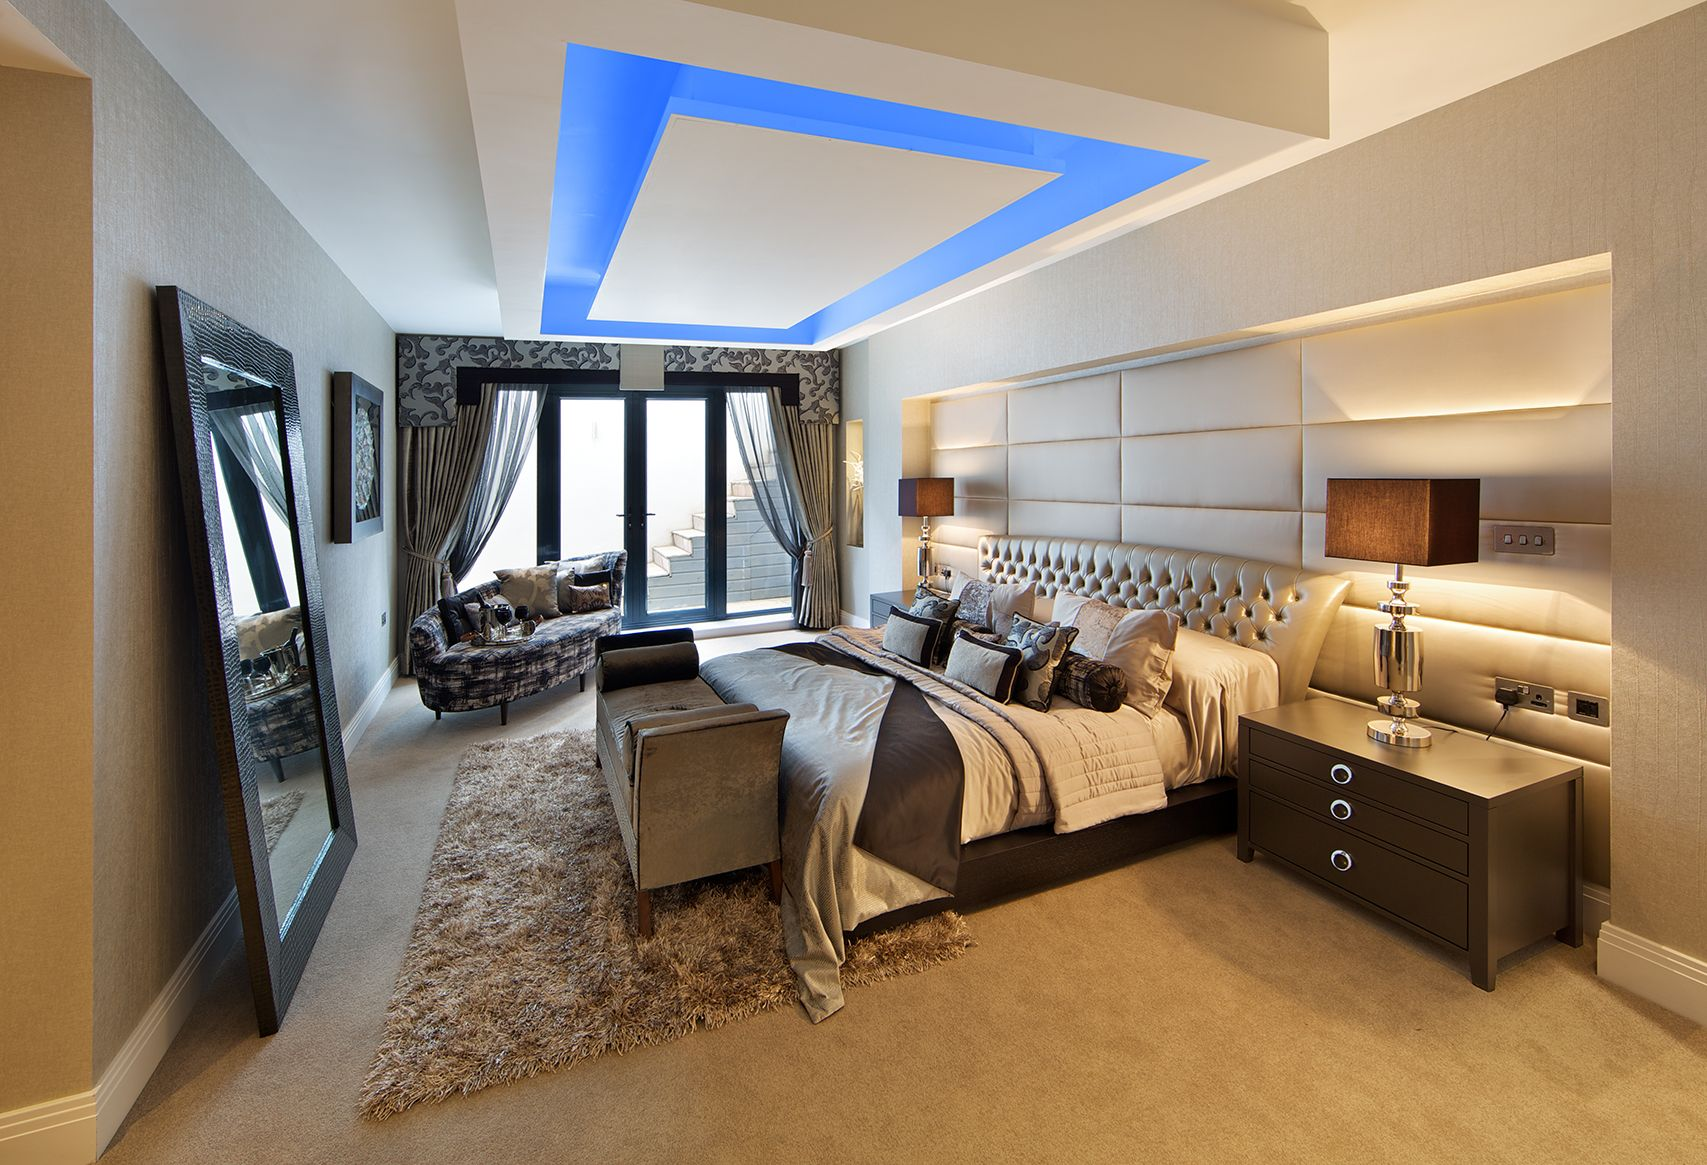 Stunning Master Bedroom Suite In Our Latest Award Winning Showhome - Award winning bedroom designs